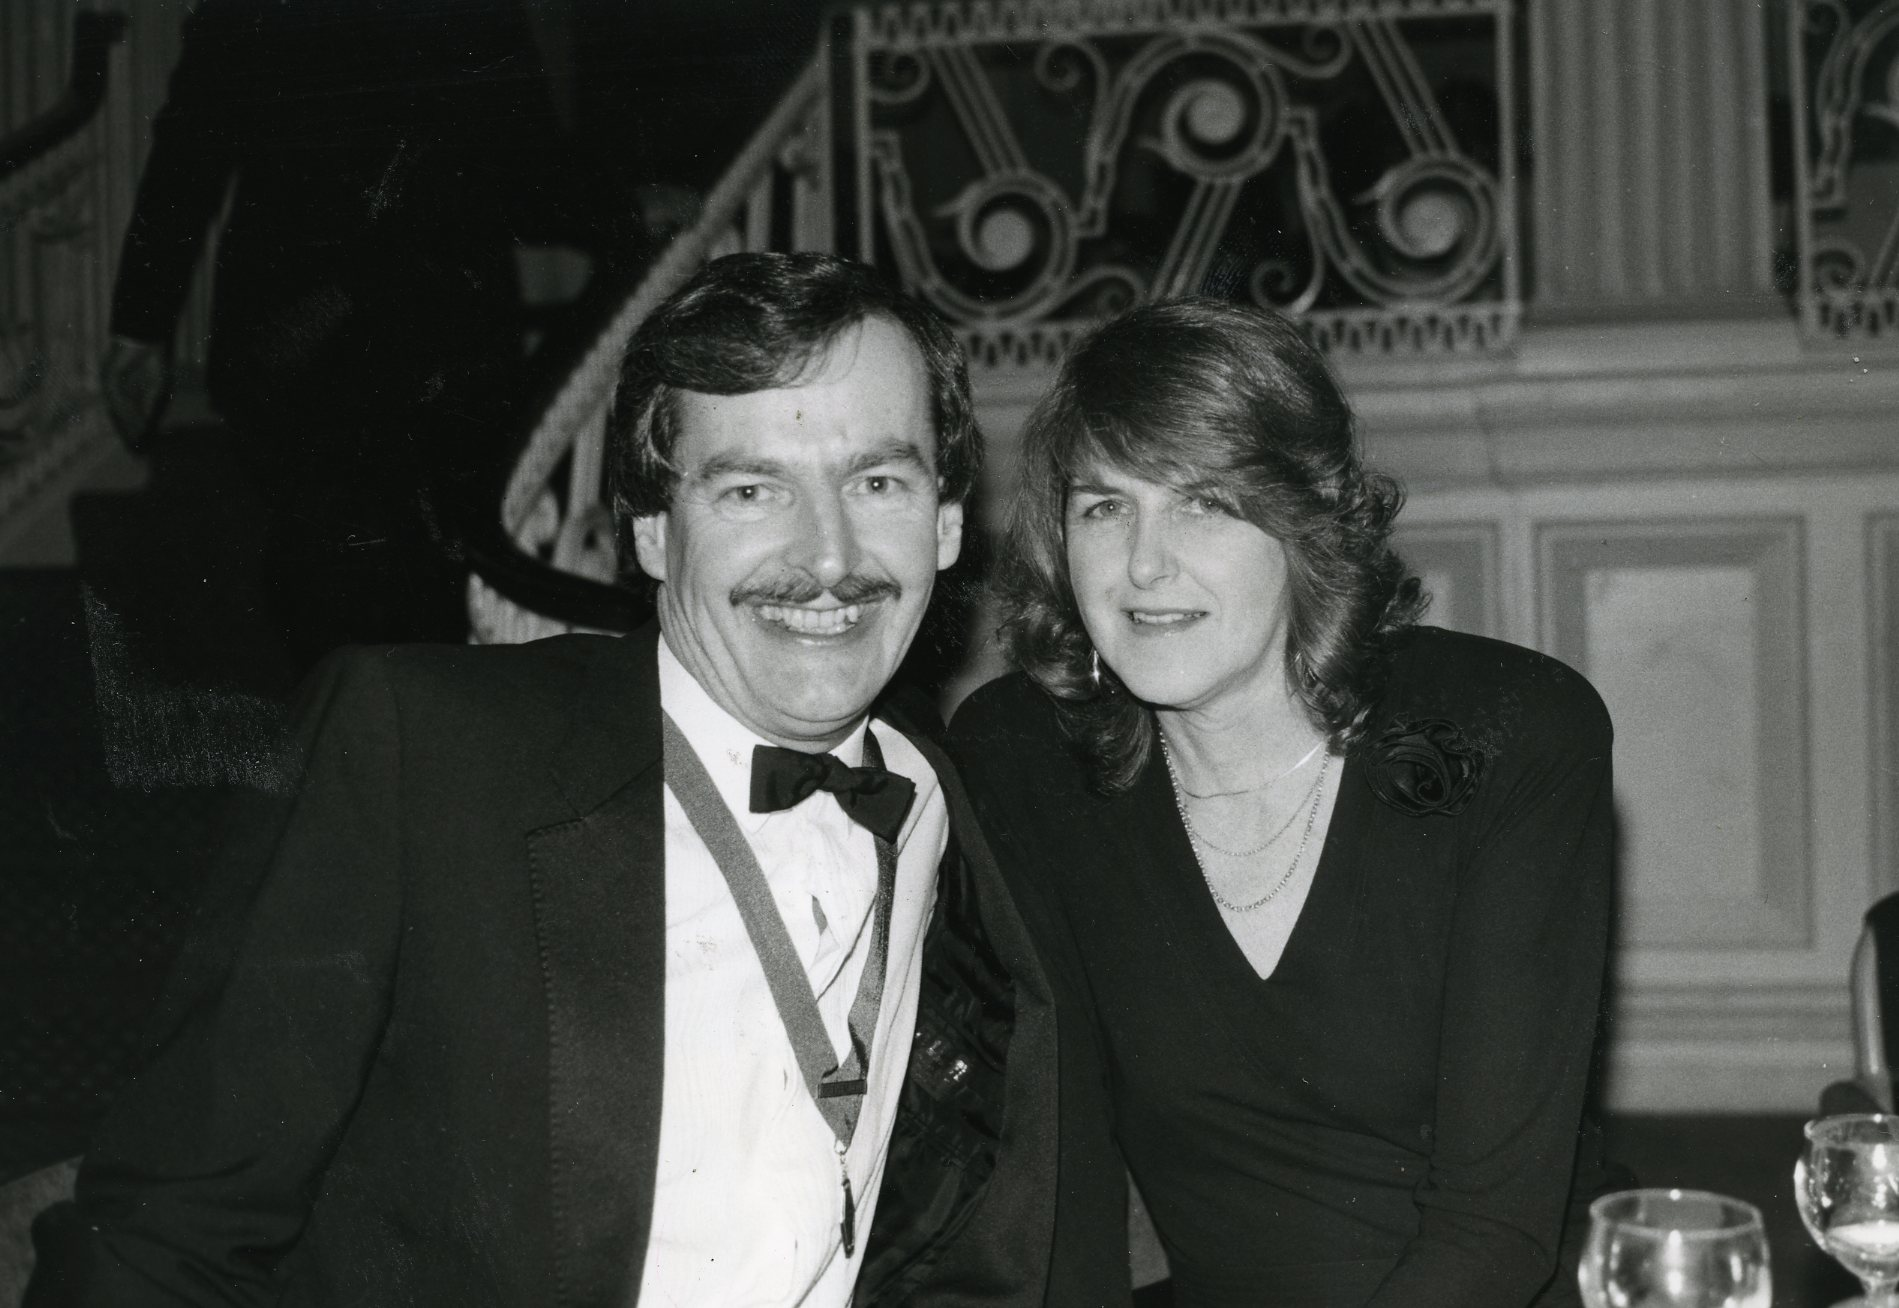 Above: Simon Elvin with his wife and longstanding business partner Janet during his GCCA presidential year in 1983.